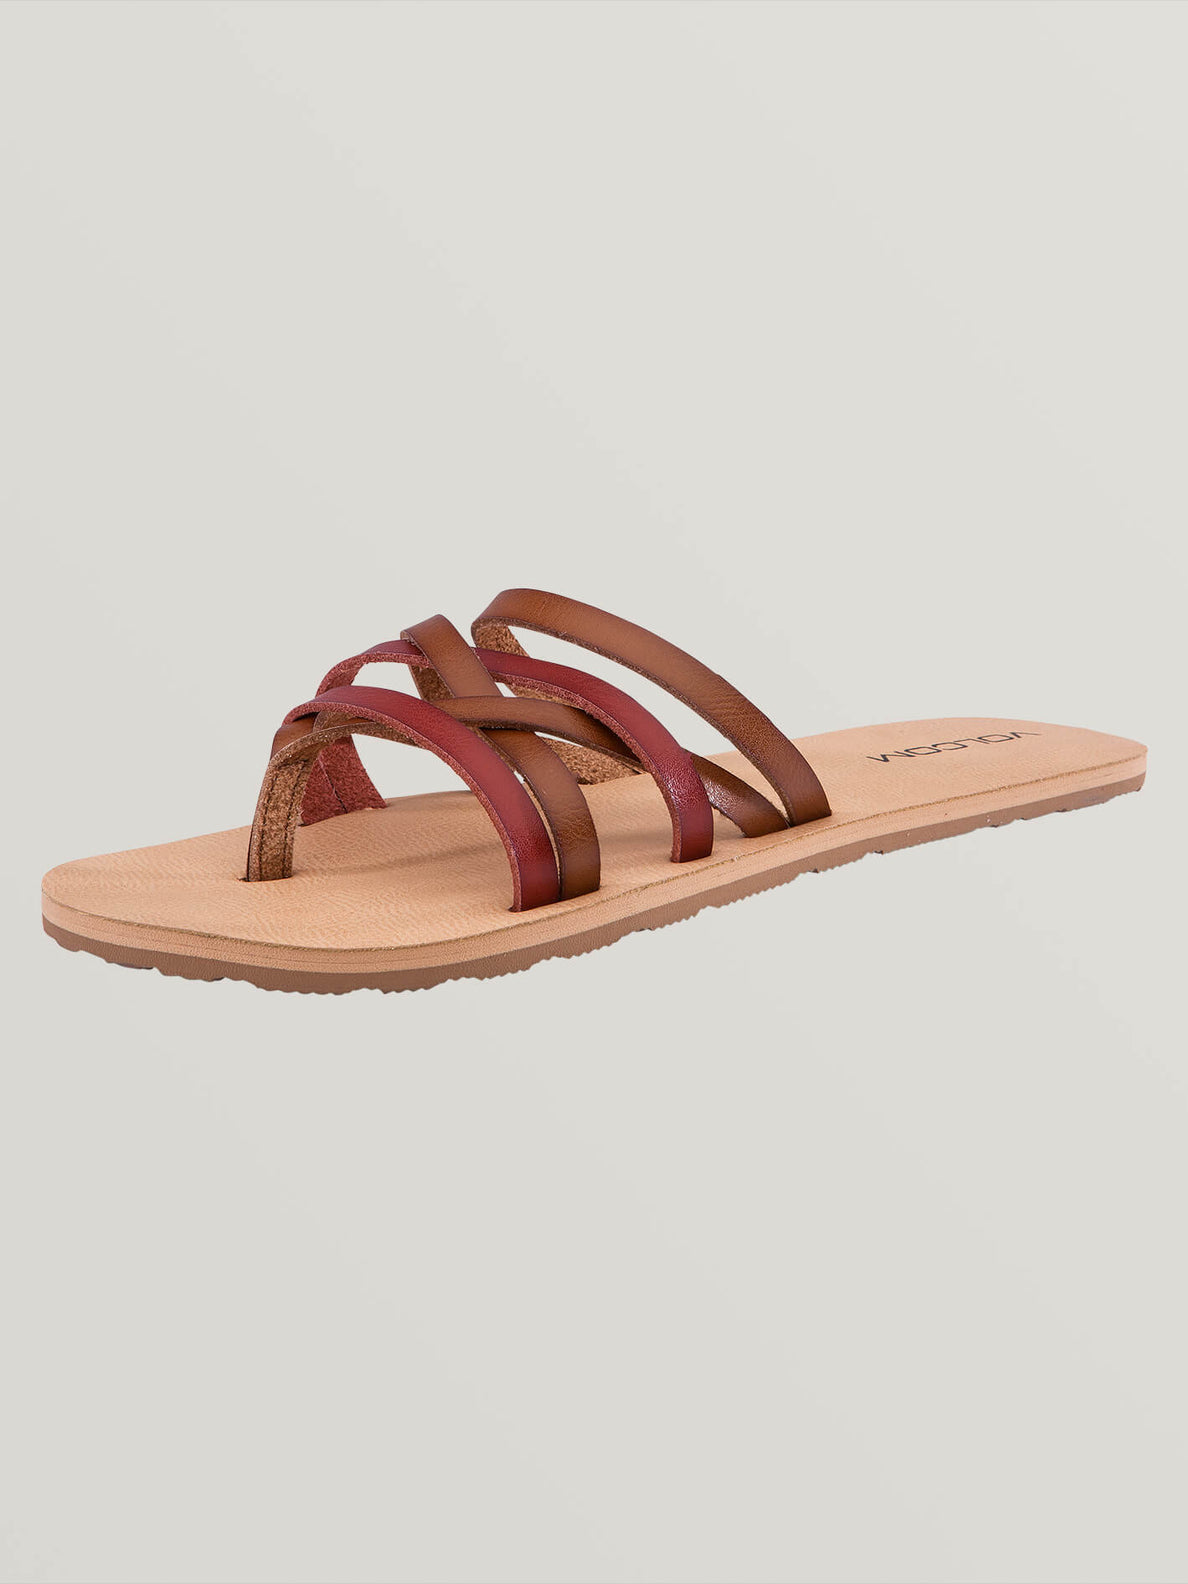 Legacy Sandals In Tan, Back View